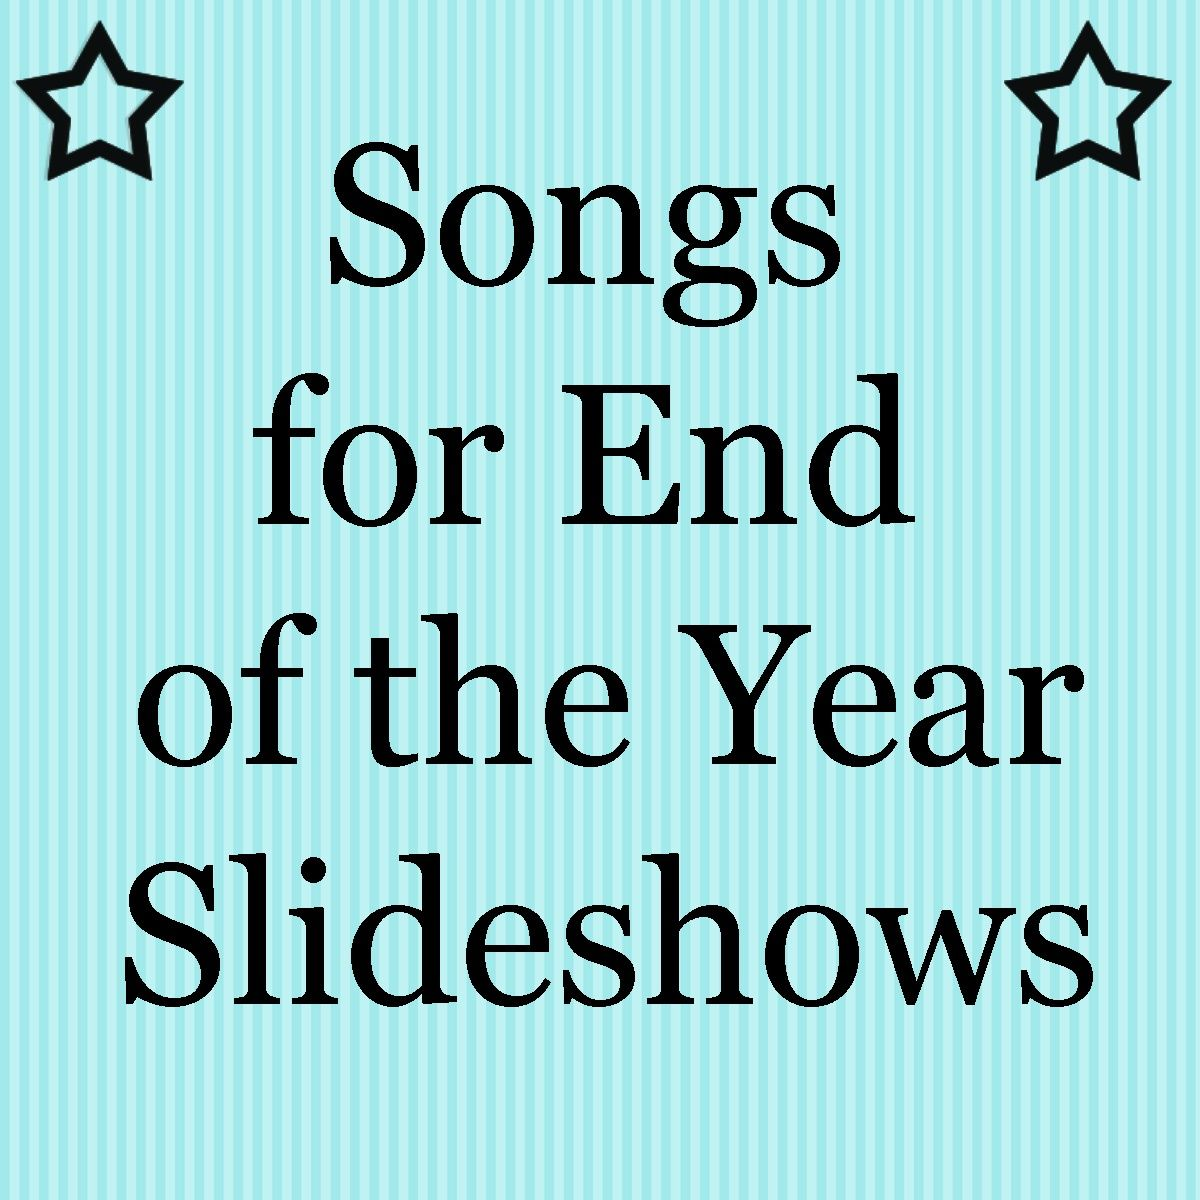 Pre K Quotes Songs For End Of The Year Slideshows  Graduation Slide Show